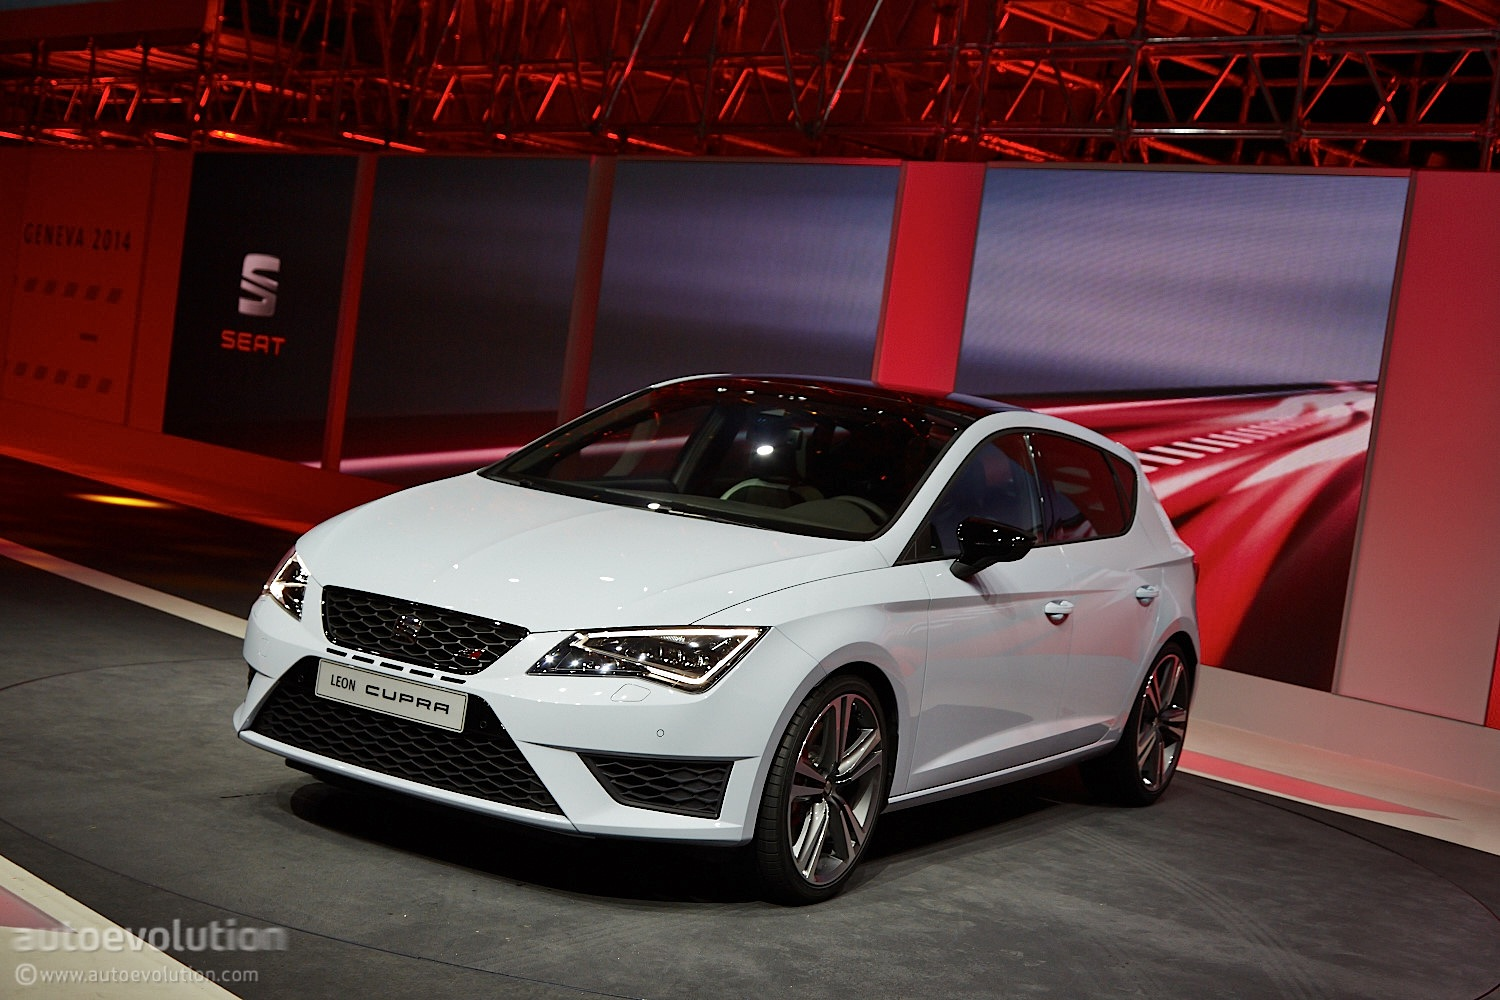 2014 Seat Leon Cupra Is The Hottest Of The Hot Hatches